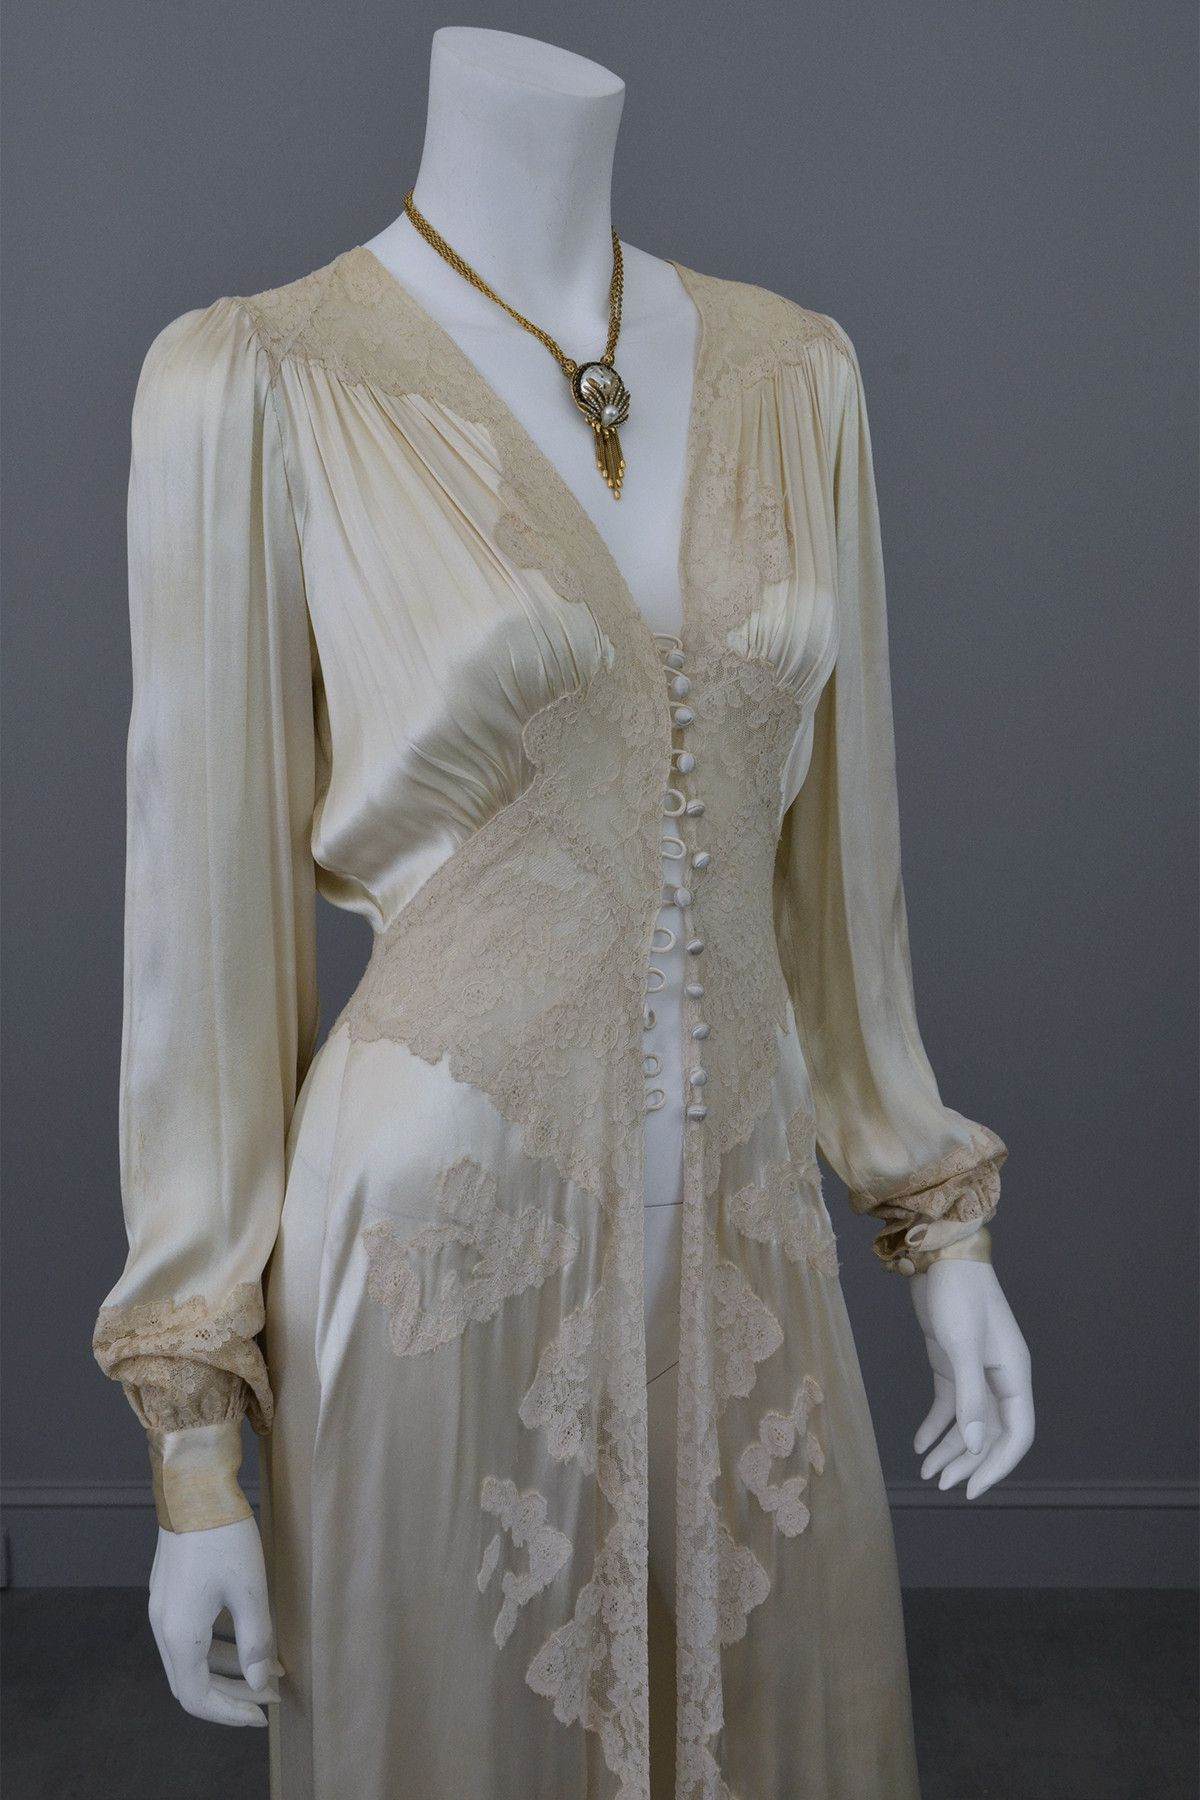 ff61d51f4 1930s vintage silk and lace robe deco negligee robe from VintageVirtuosa